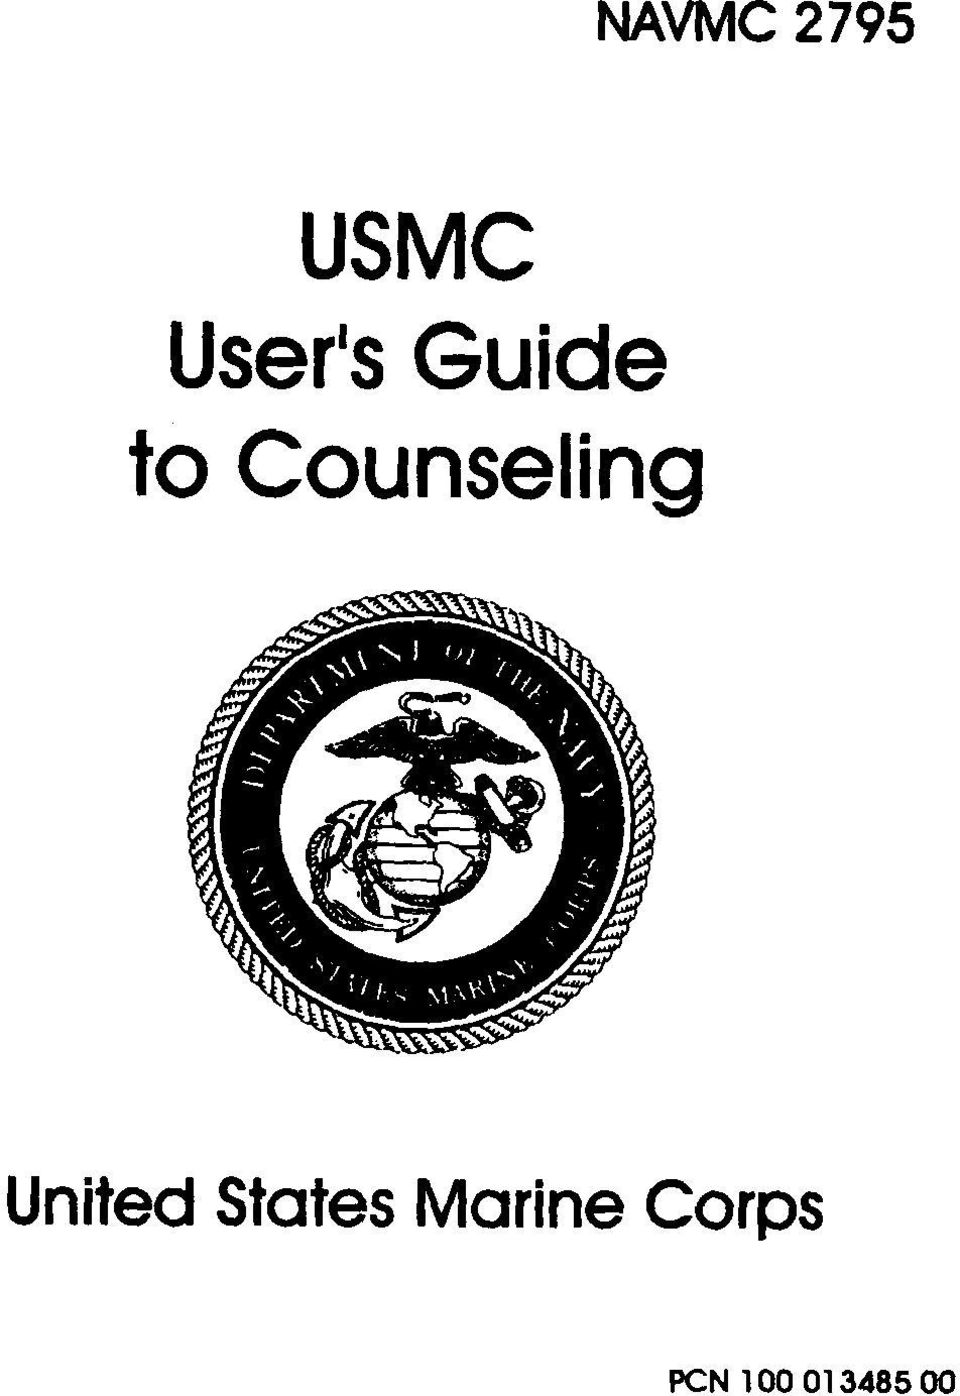 worksheet. Navmc 2795 Counseling Worksheet. Worksheet Fun